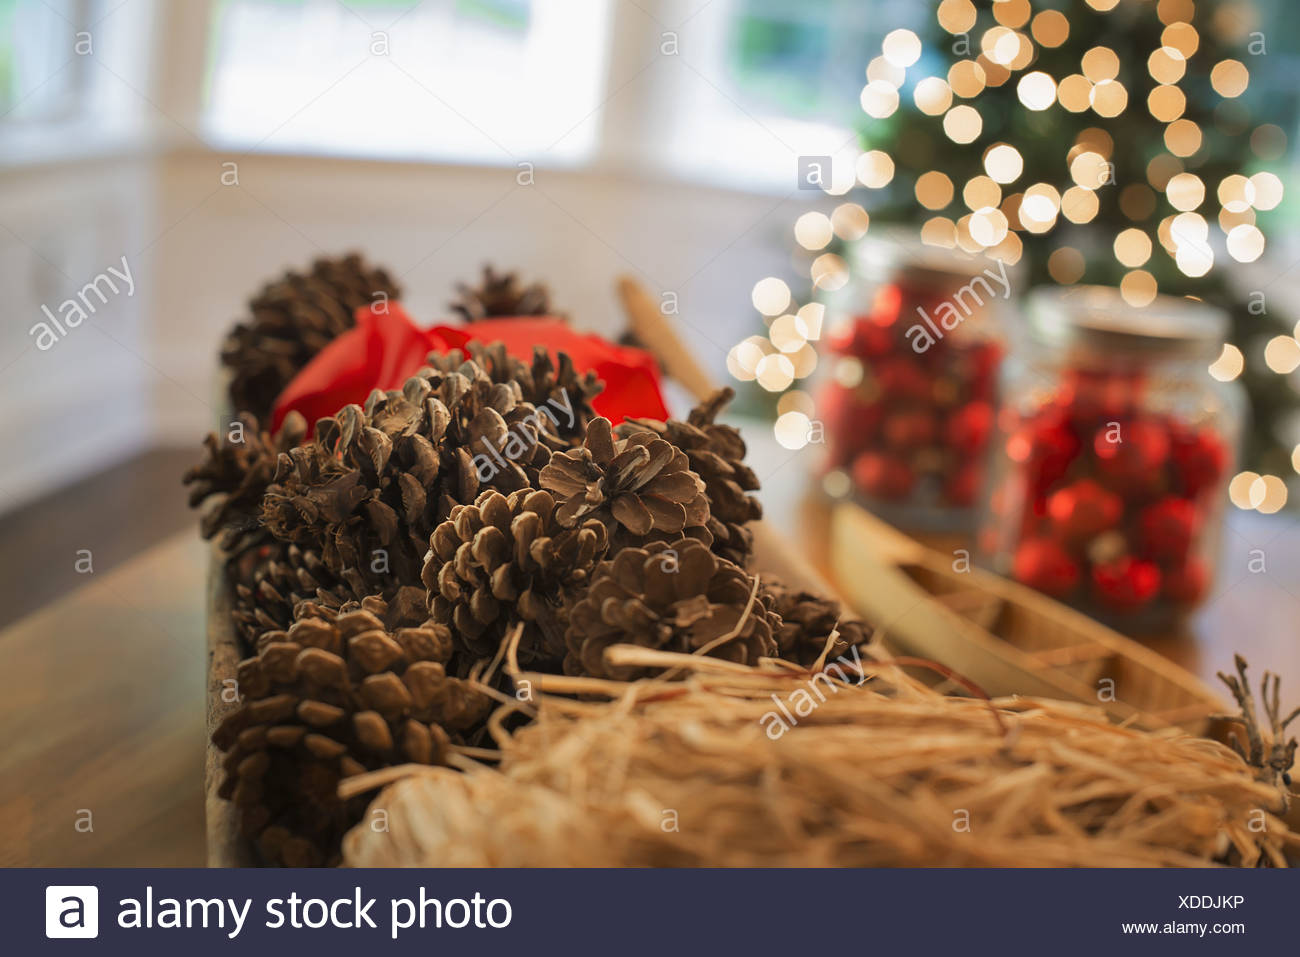 Woodstock New York USA Red glass balls pine cones Christmas decorations - Stock Image